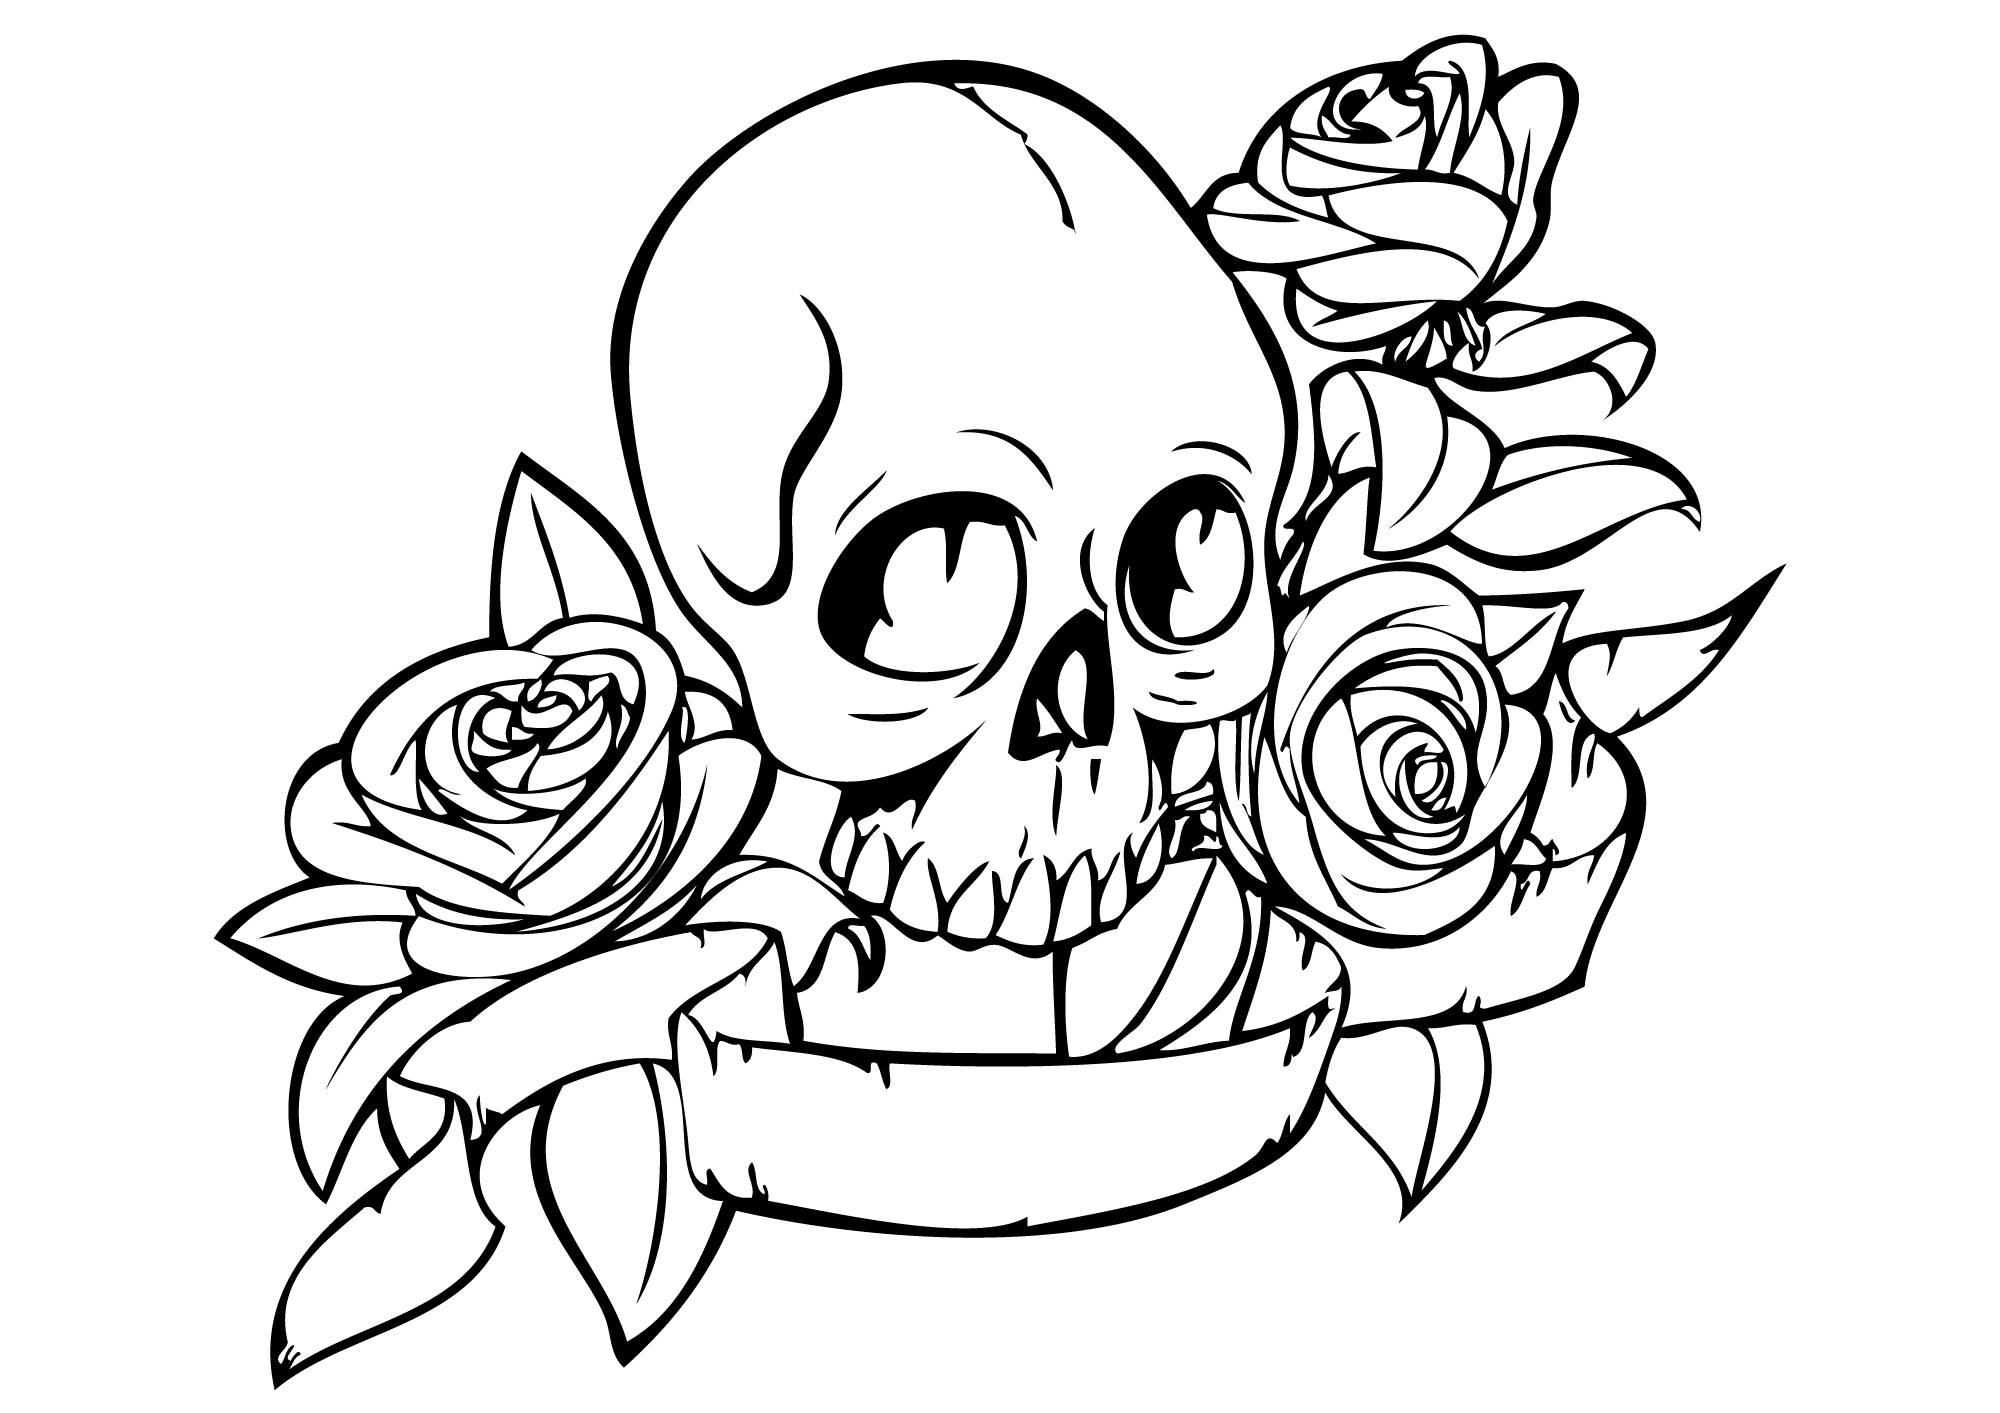 Free Skulls Roses Coloring Pages Skulls And Roses Coloring Pages